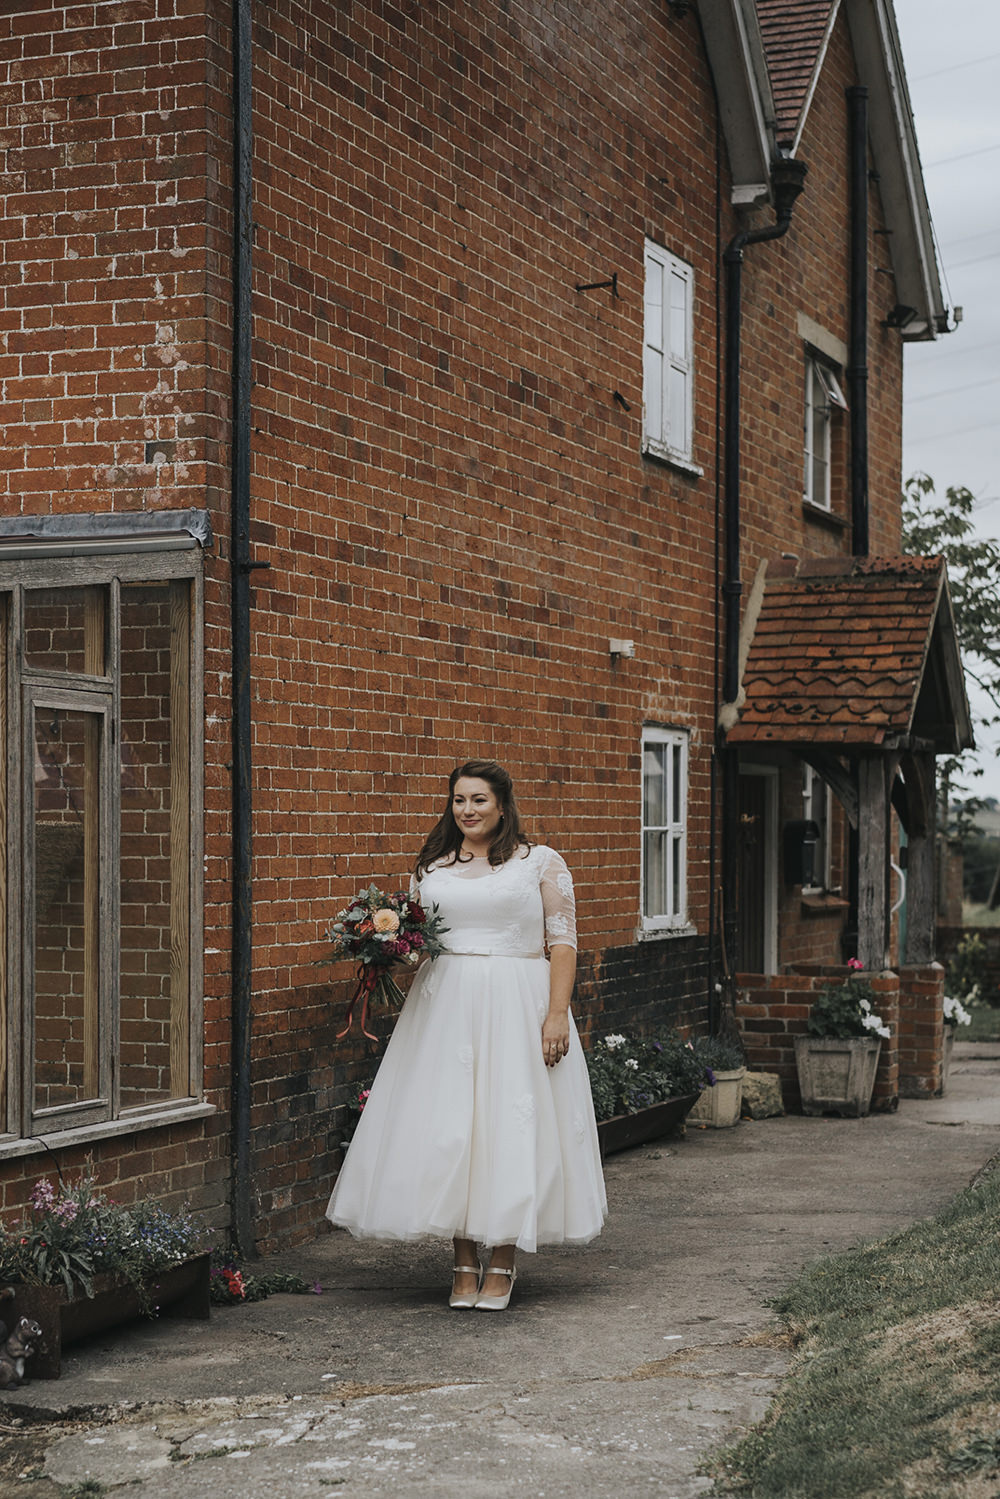 Bride Bridal Dress Gown Overlay Belt See Through Sleeves Lace Ballerina Length Celestial Cow Shed Wedding Tora Baker Photography